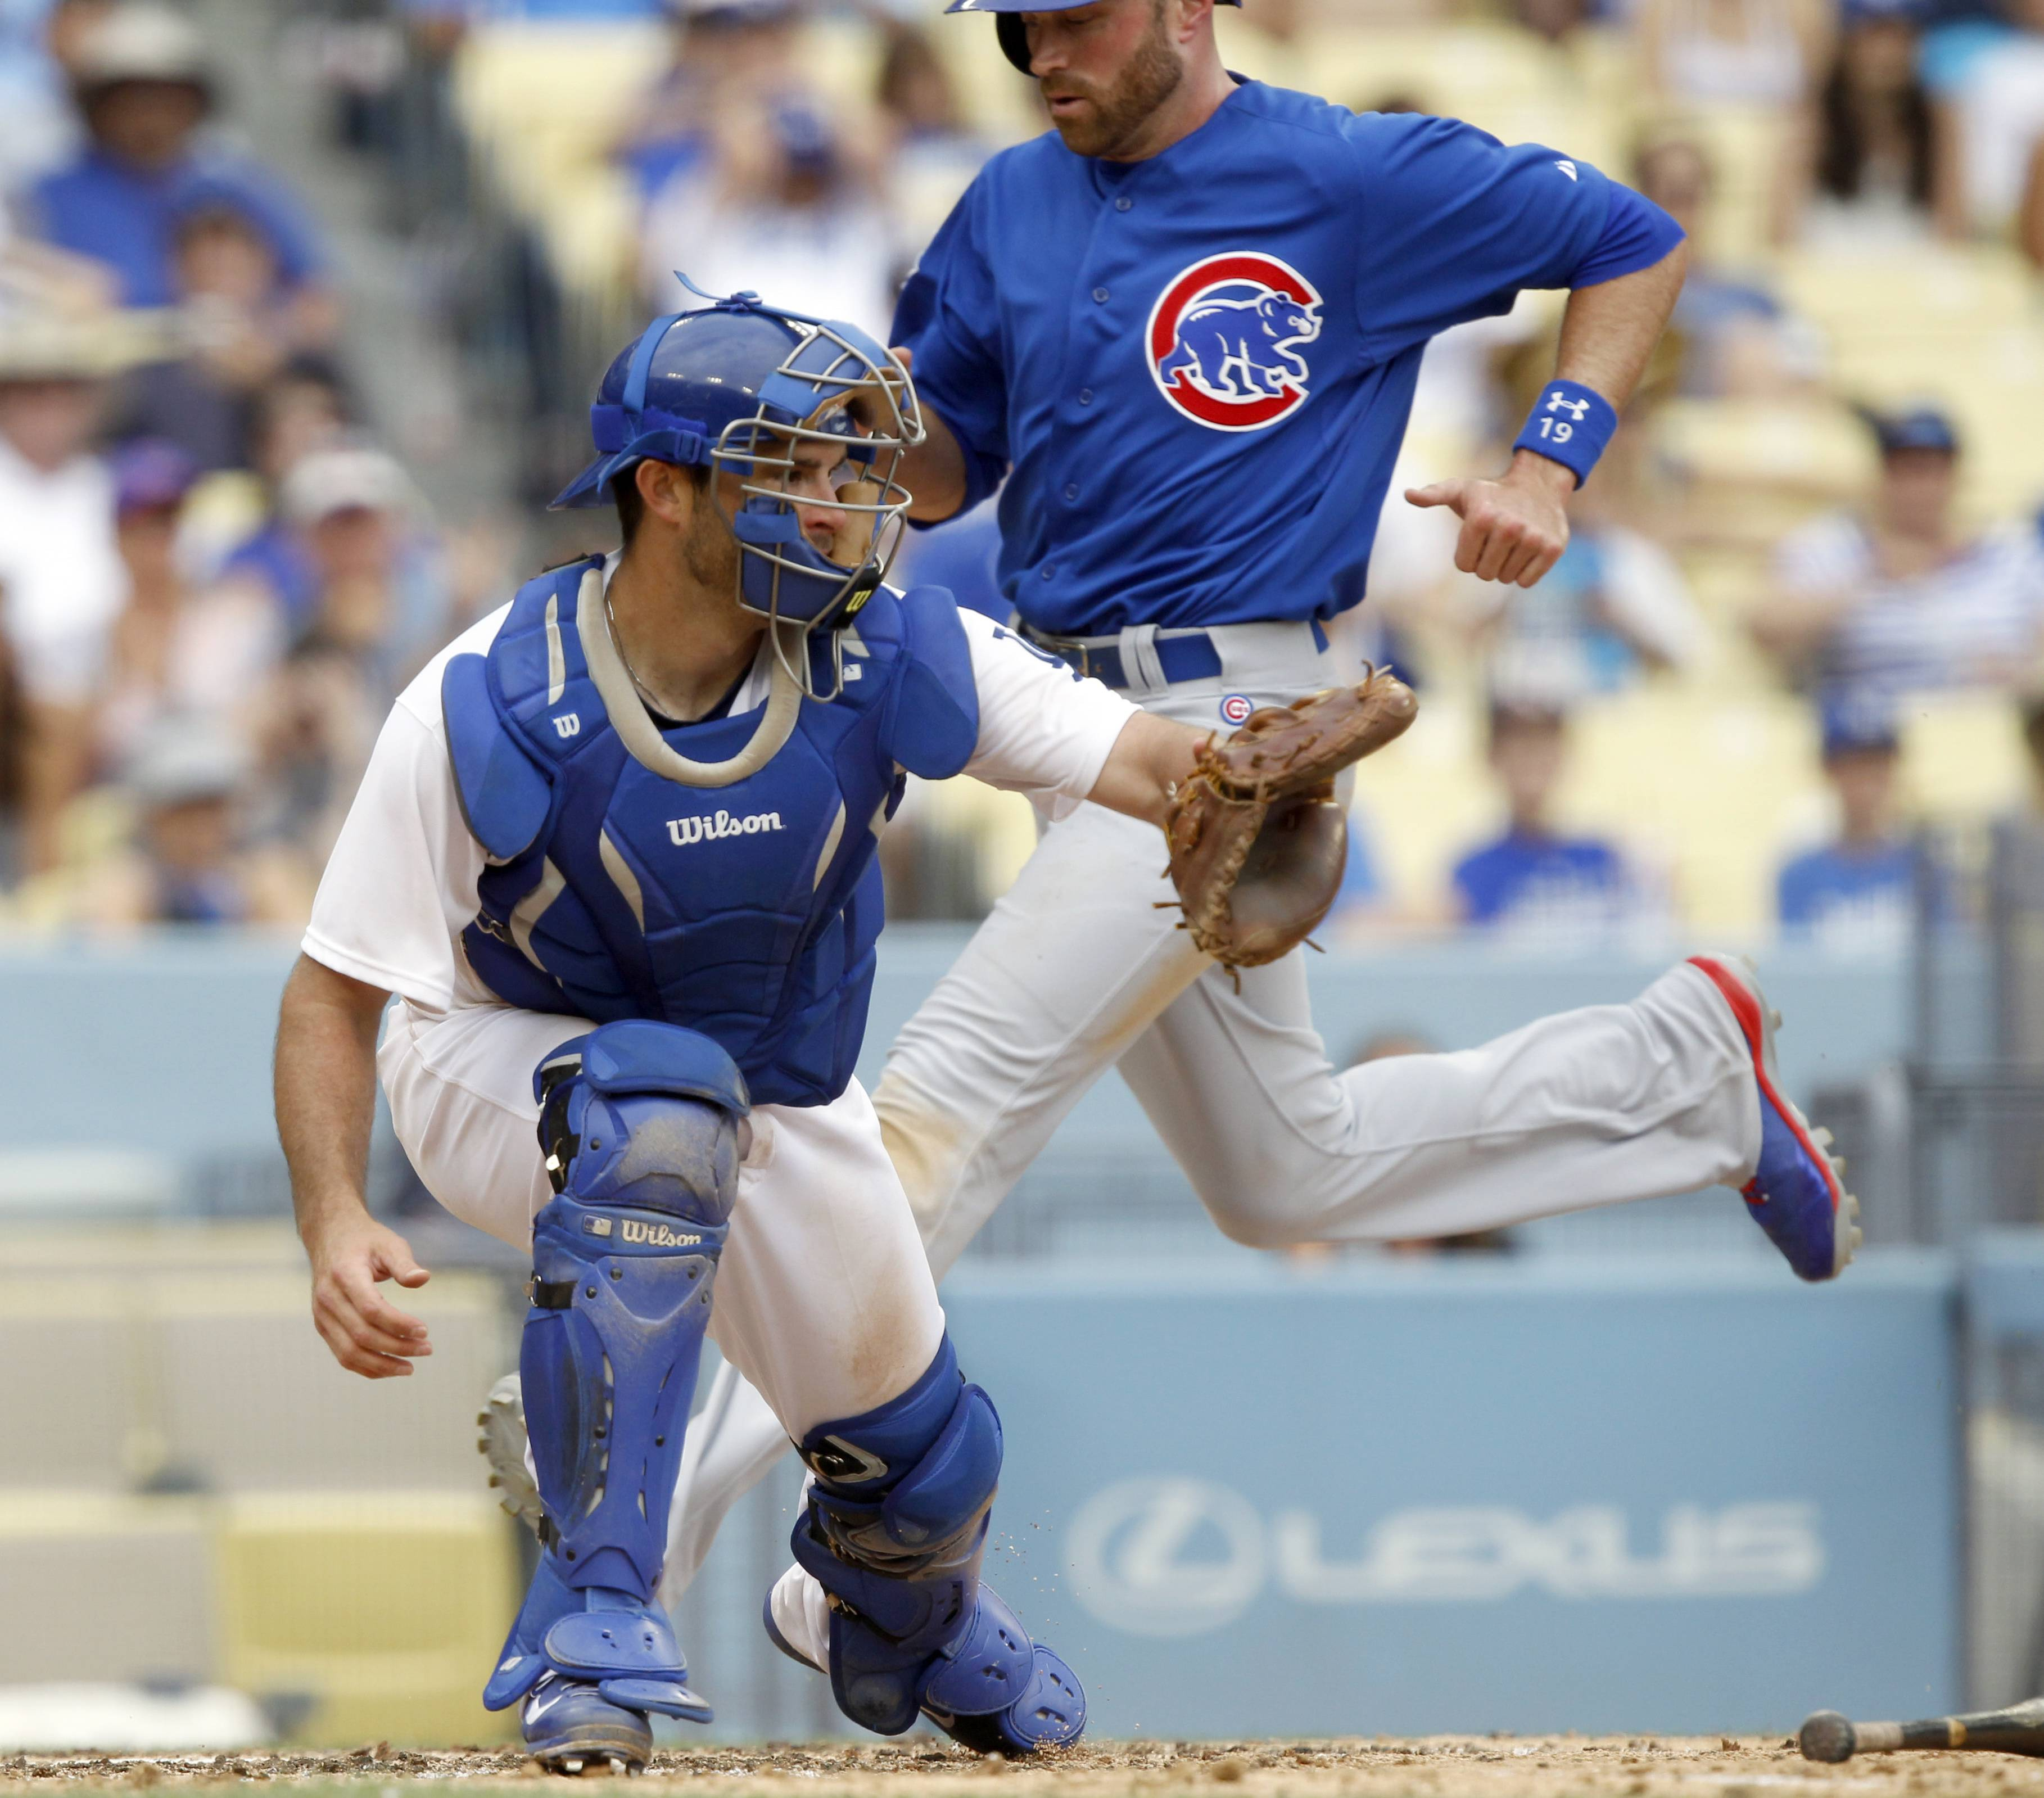 Chicago Cubs' Nate Schierholtz, right, beats the throw to Los Angeles Dodgers catcher Drew Butera, left, from center field, to score with Cubs' Chris Valaika on a single by the Cubs' Starlin Castro in the eighth inning of a baseball game on Sunday, Aug. 3, 2014, in Los Angeles.